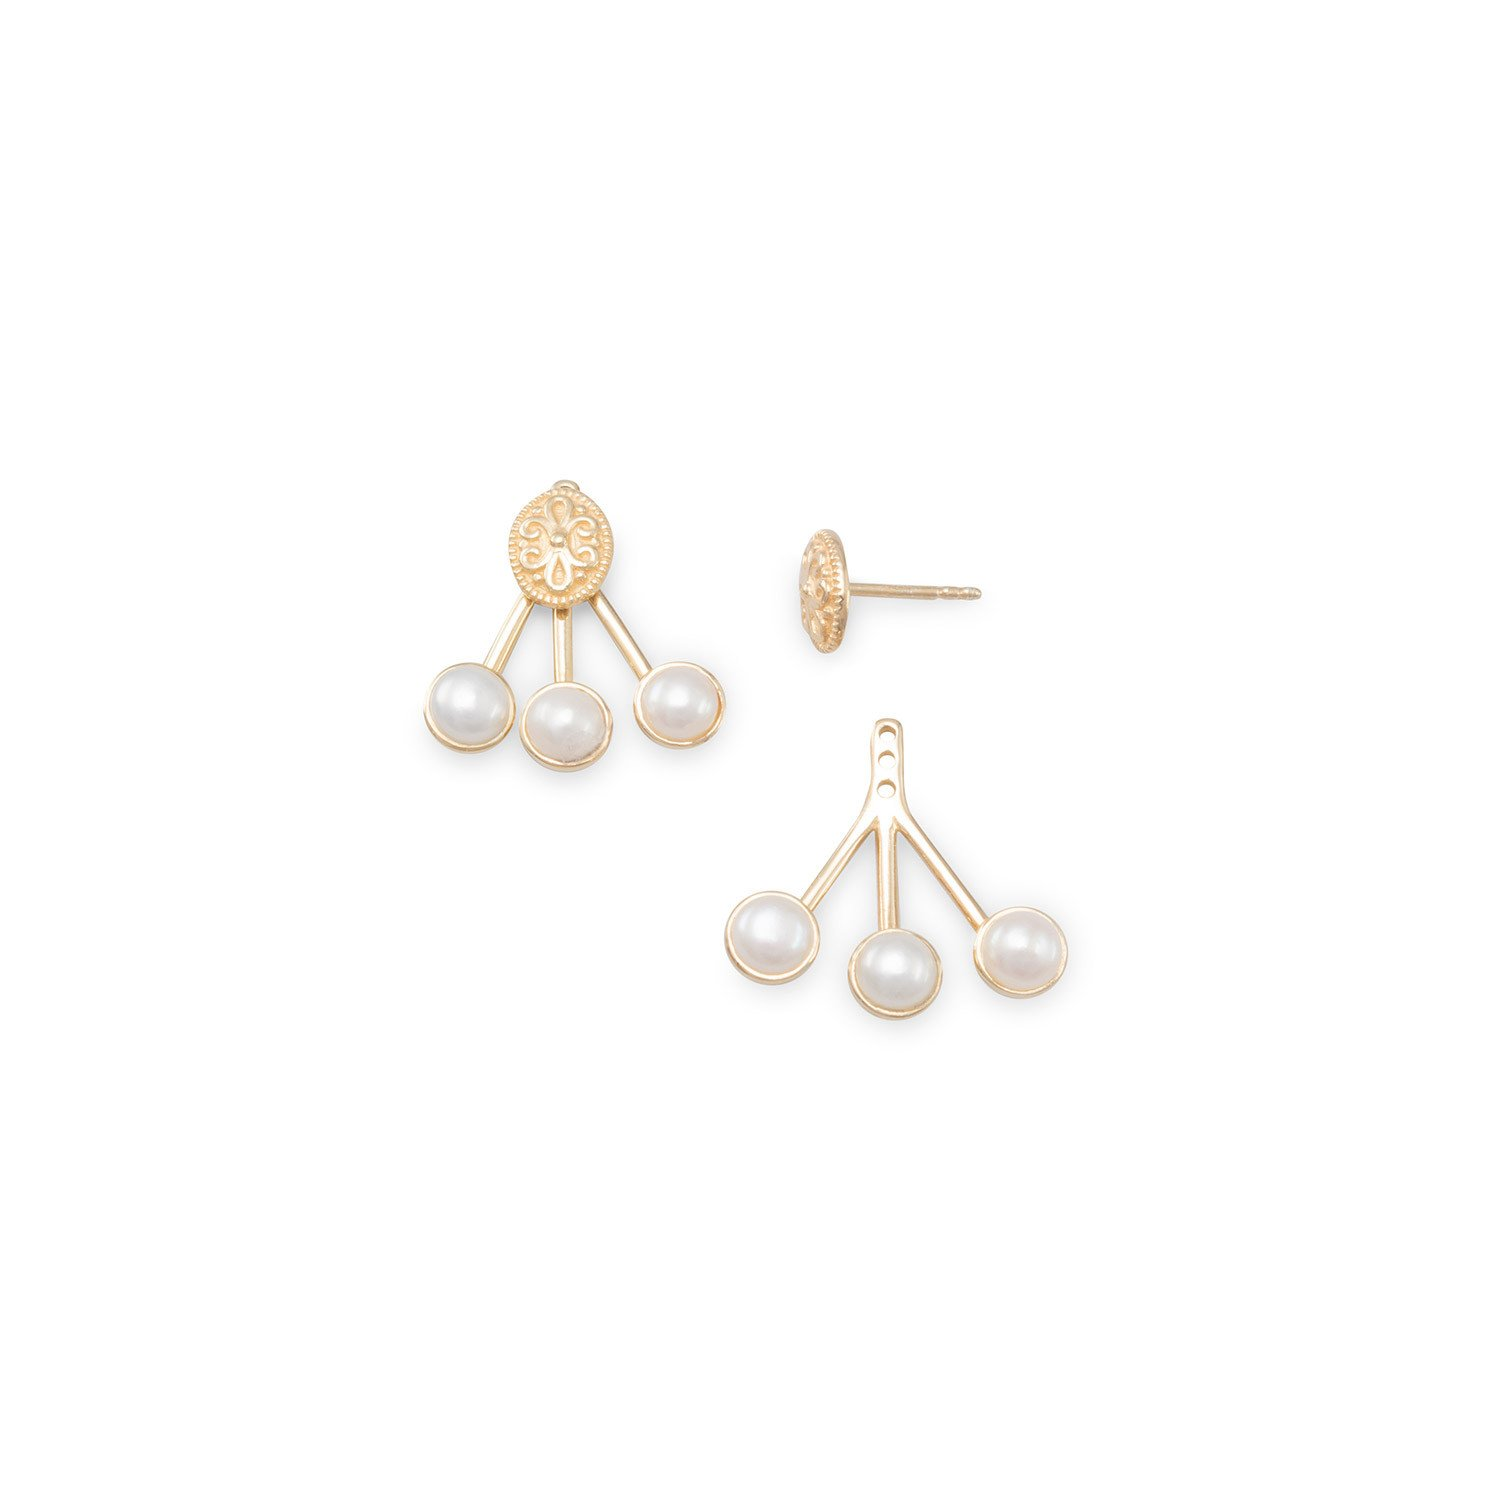 14K Gold Plated Cultured Freshwater Pearl Front Back Earrings